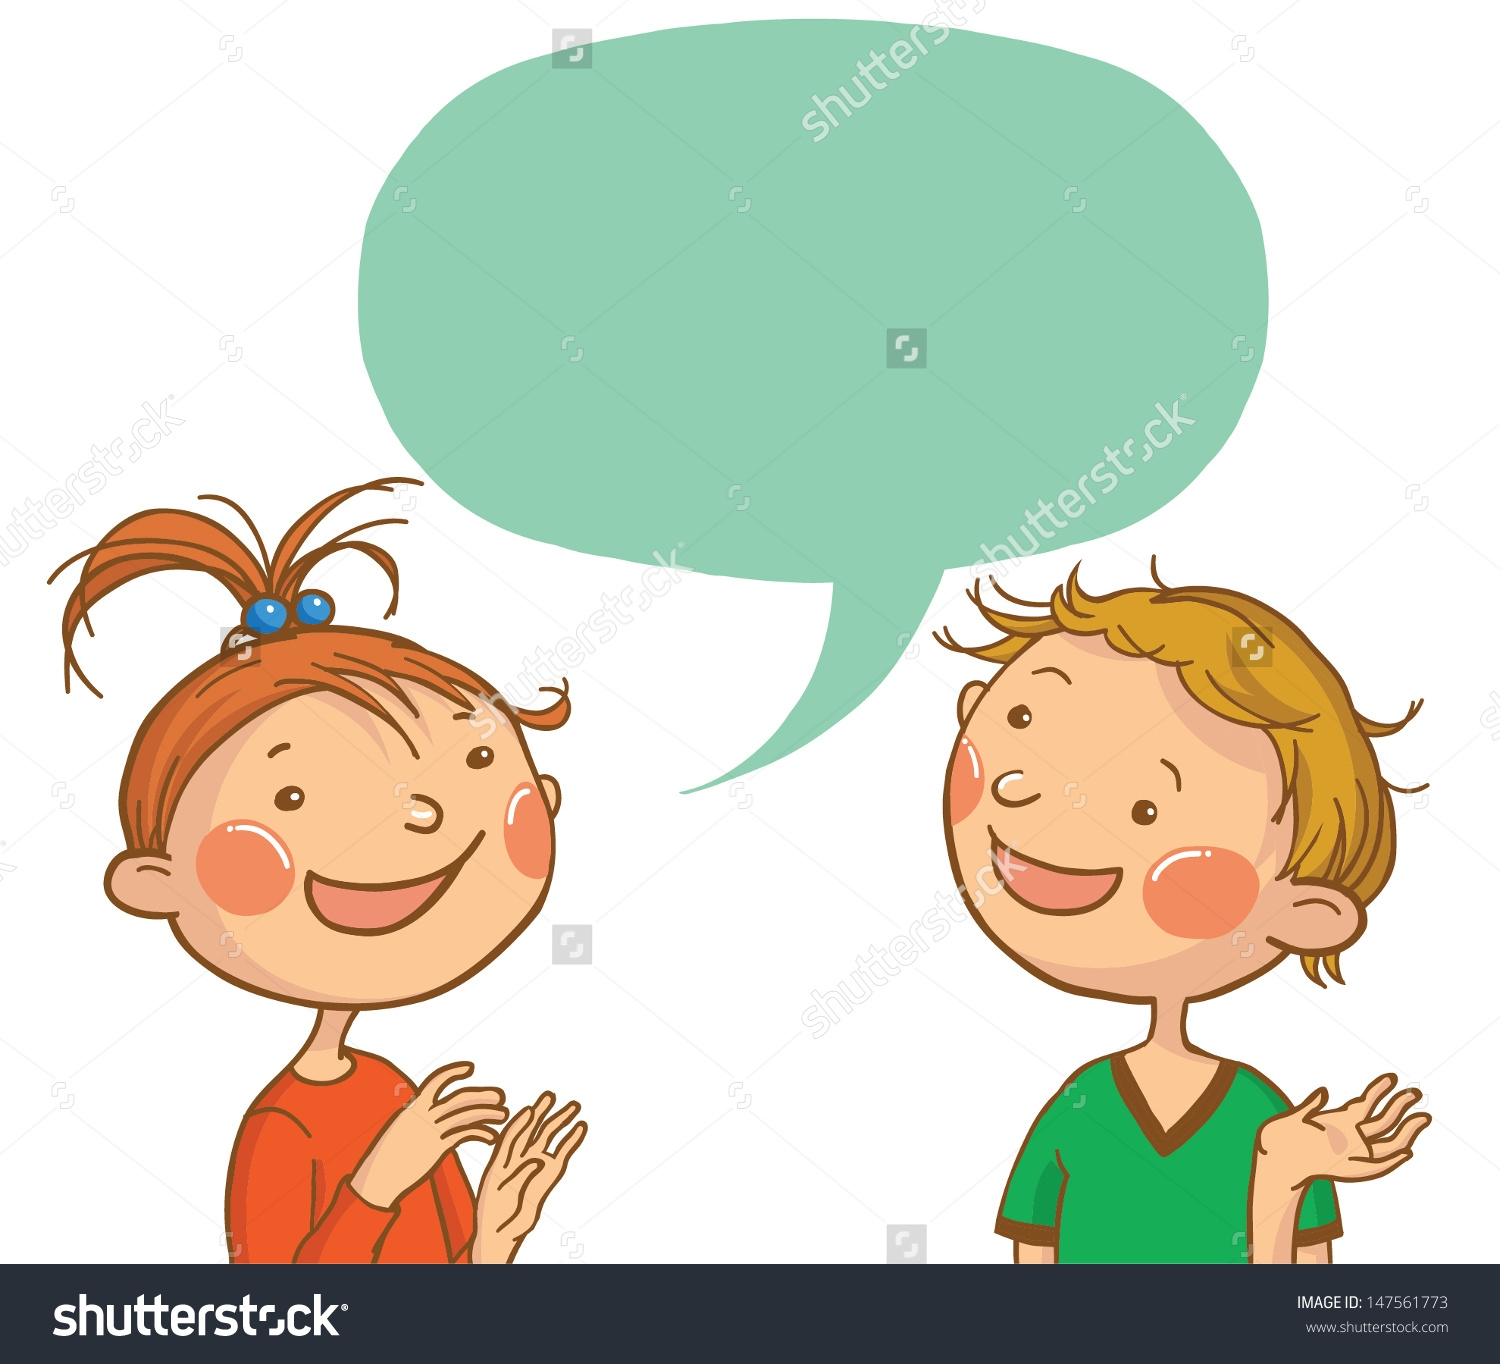 Two Children Talking Clipart-Two Children Talking Clipart-18